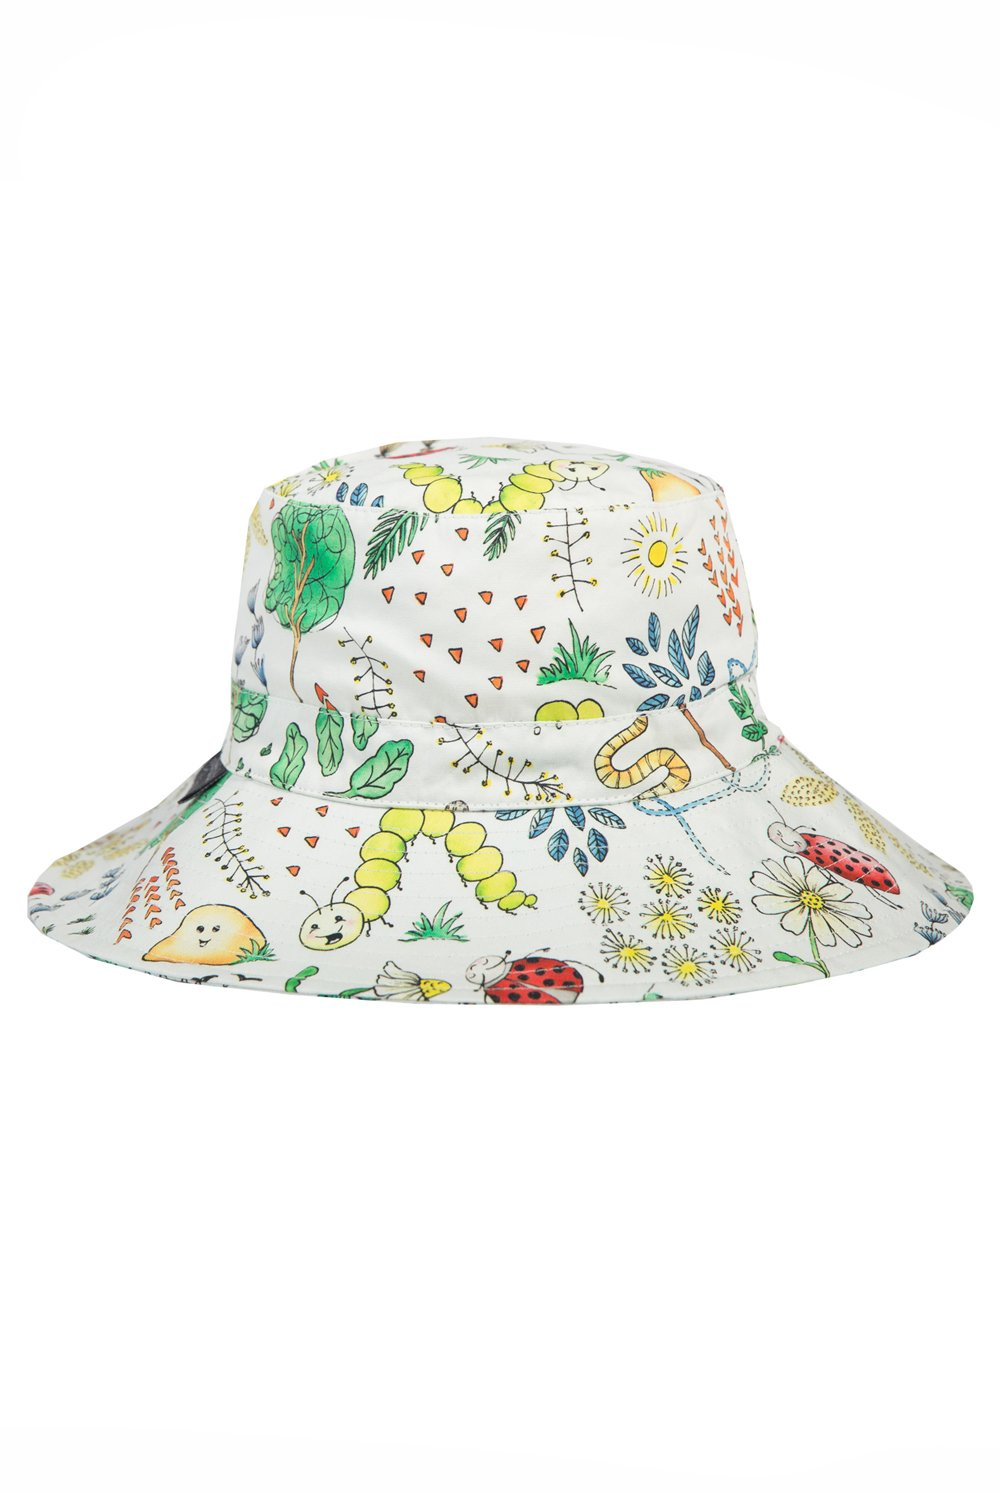 Little Creatures Children's Sun Hat